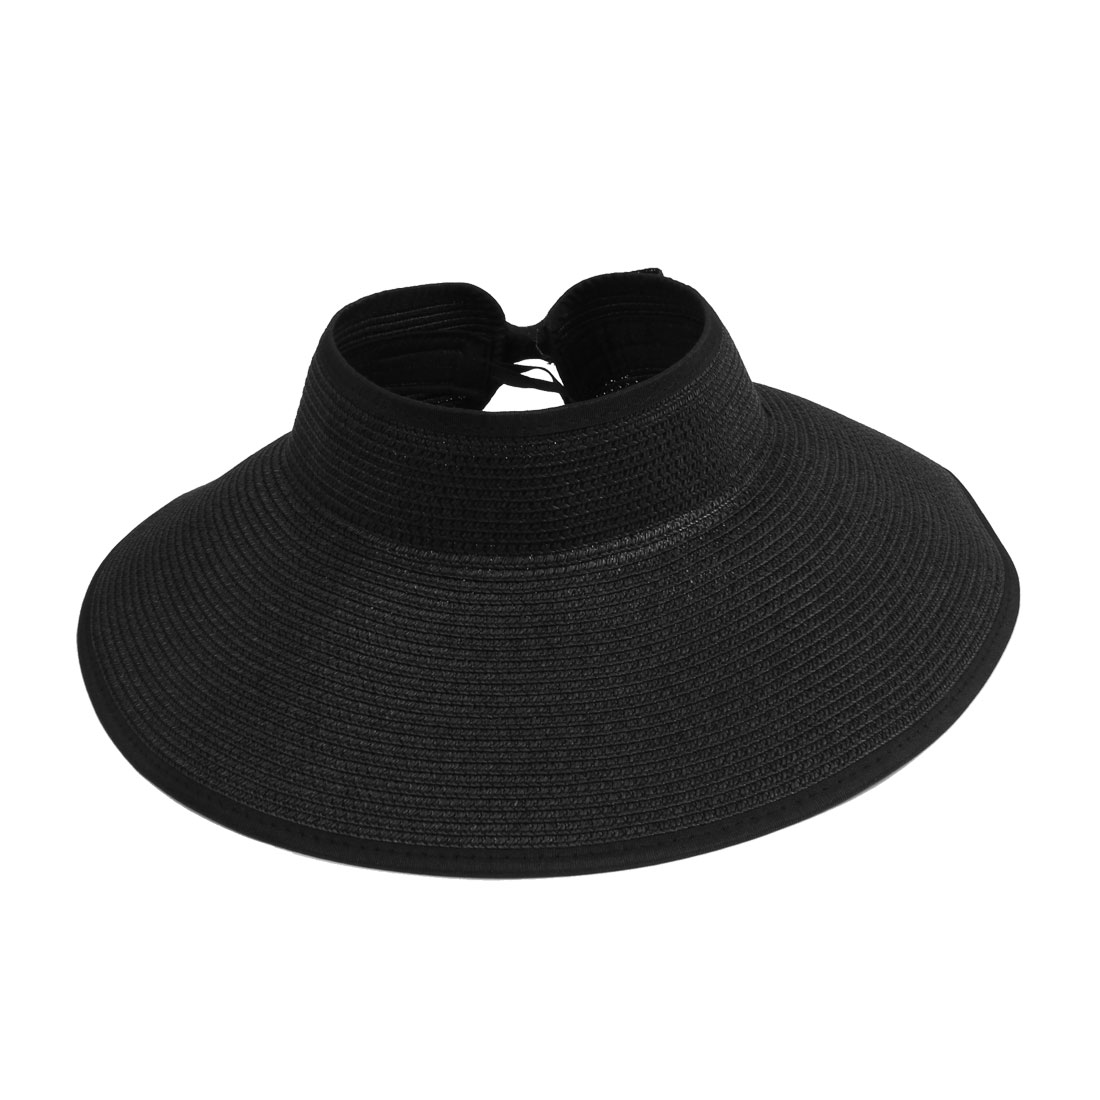 Lady Summer Bow Tie Decor Nylon Hem Foldable Black Wide Brim Straw Hat